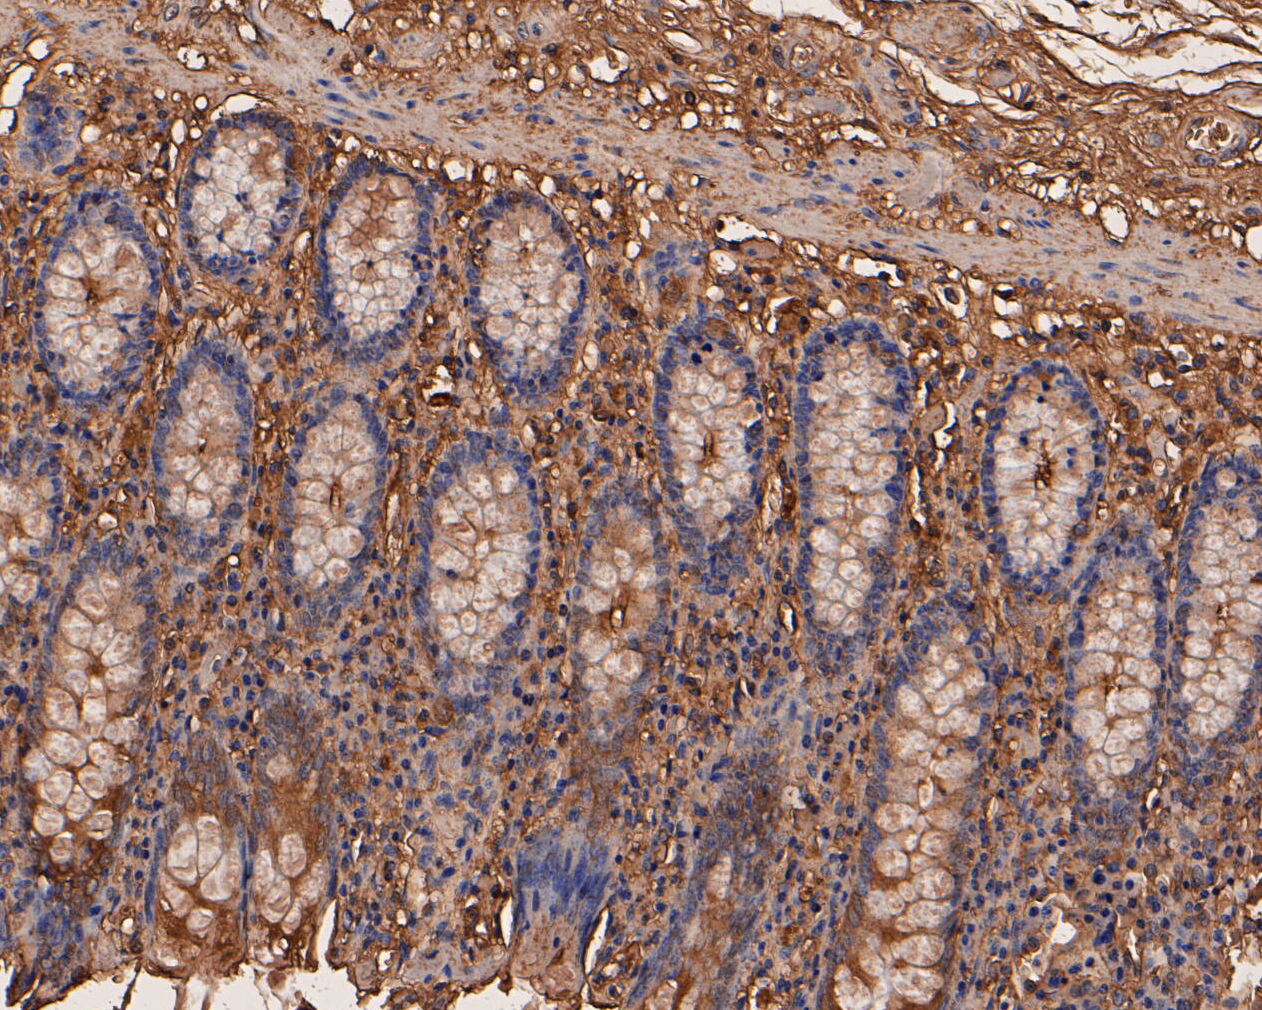 Immunohistochemical analysis of paraffin-embedded human colon tissue using anti-CEACAM6 antibody. The section was pre-treated using heat mediated antigen retrieval with Tris-EDTA buffer (pH 8.0-8.4) for 20 minutes.The tissues were blocked in 5% BSA for 30 minutes at room temperature, washed with ddH2O and PBS, and then probed with the primary antibody (EM1901-69, 1/200) for 30 minutes at room temperature. The detection was performed using an HRP conjugated compact polymer system. DAB was used as the chromogen. Tissues were counterstained with hematoxylin and mounted with DPX.